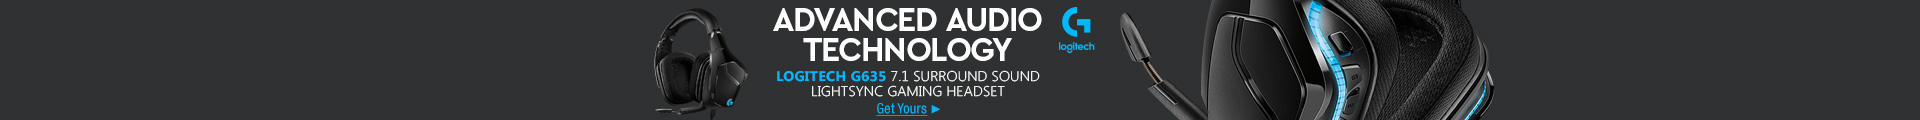 ADVANCED AUDIO TECHNOLOGY